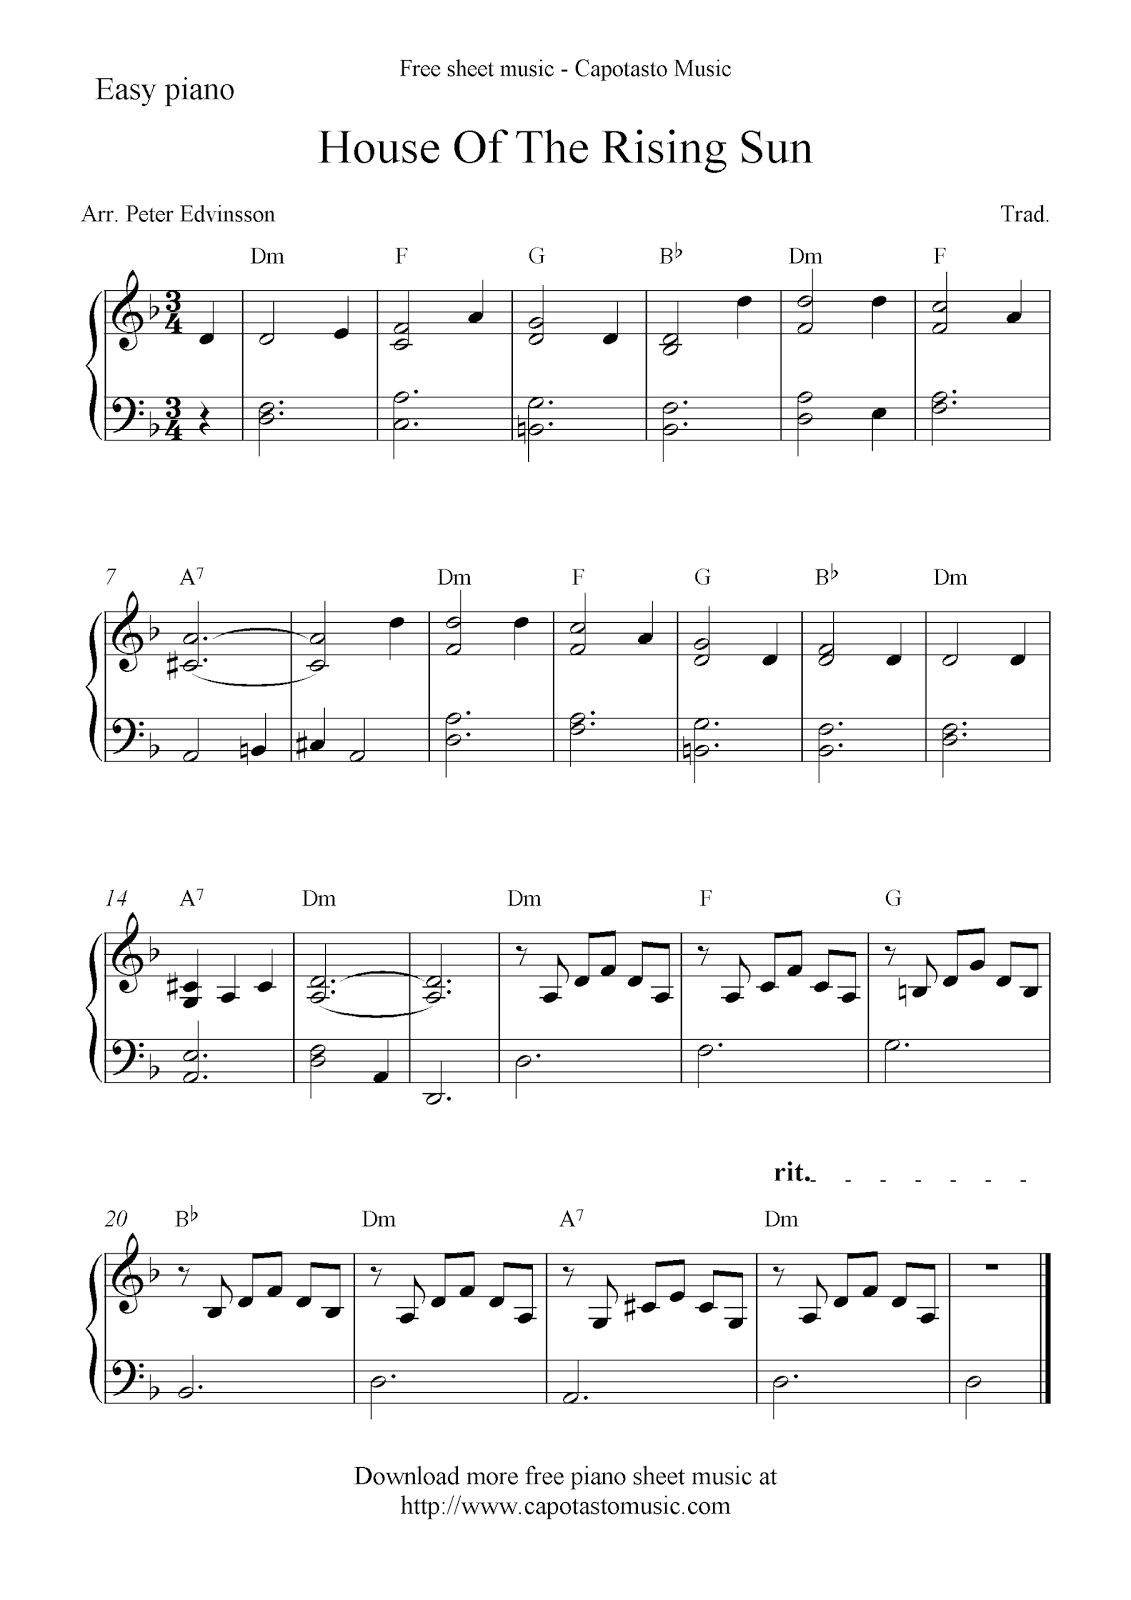 Free Piano Sheet Music Score House Of The Rising Sun